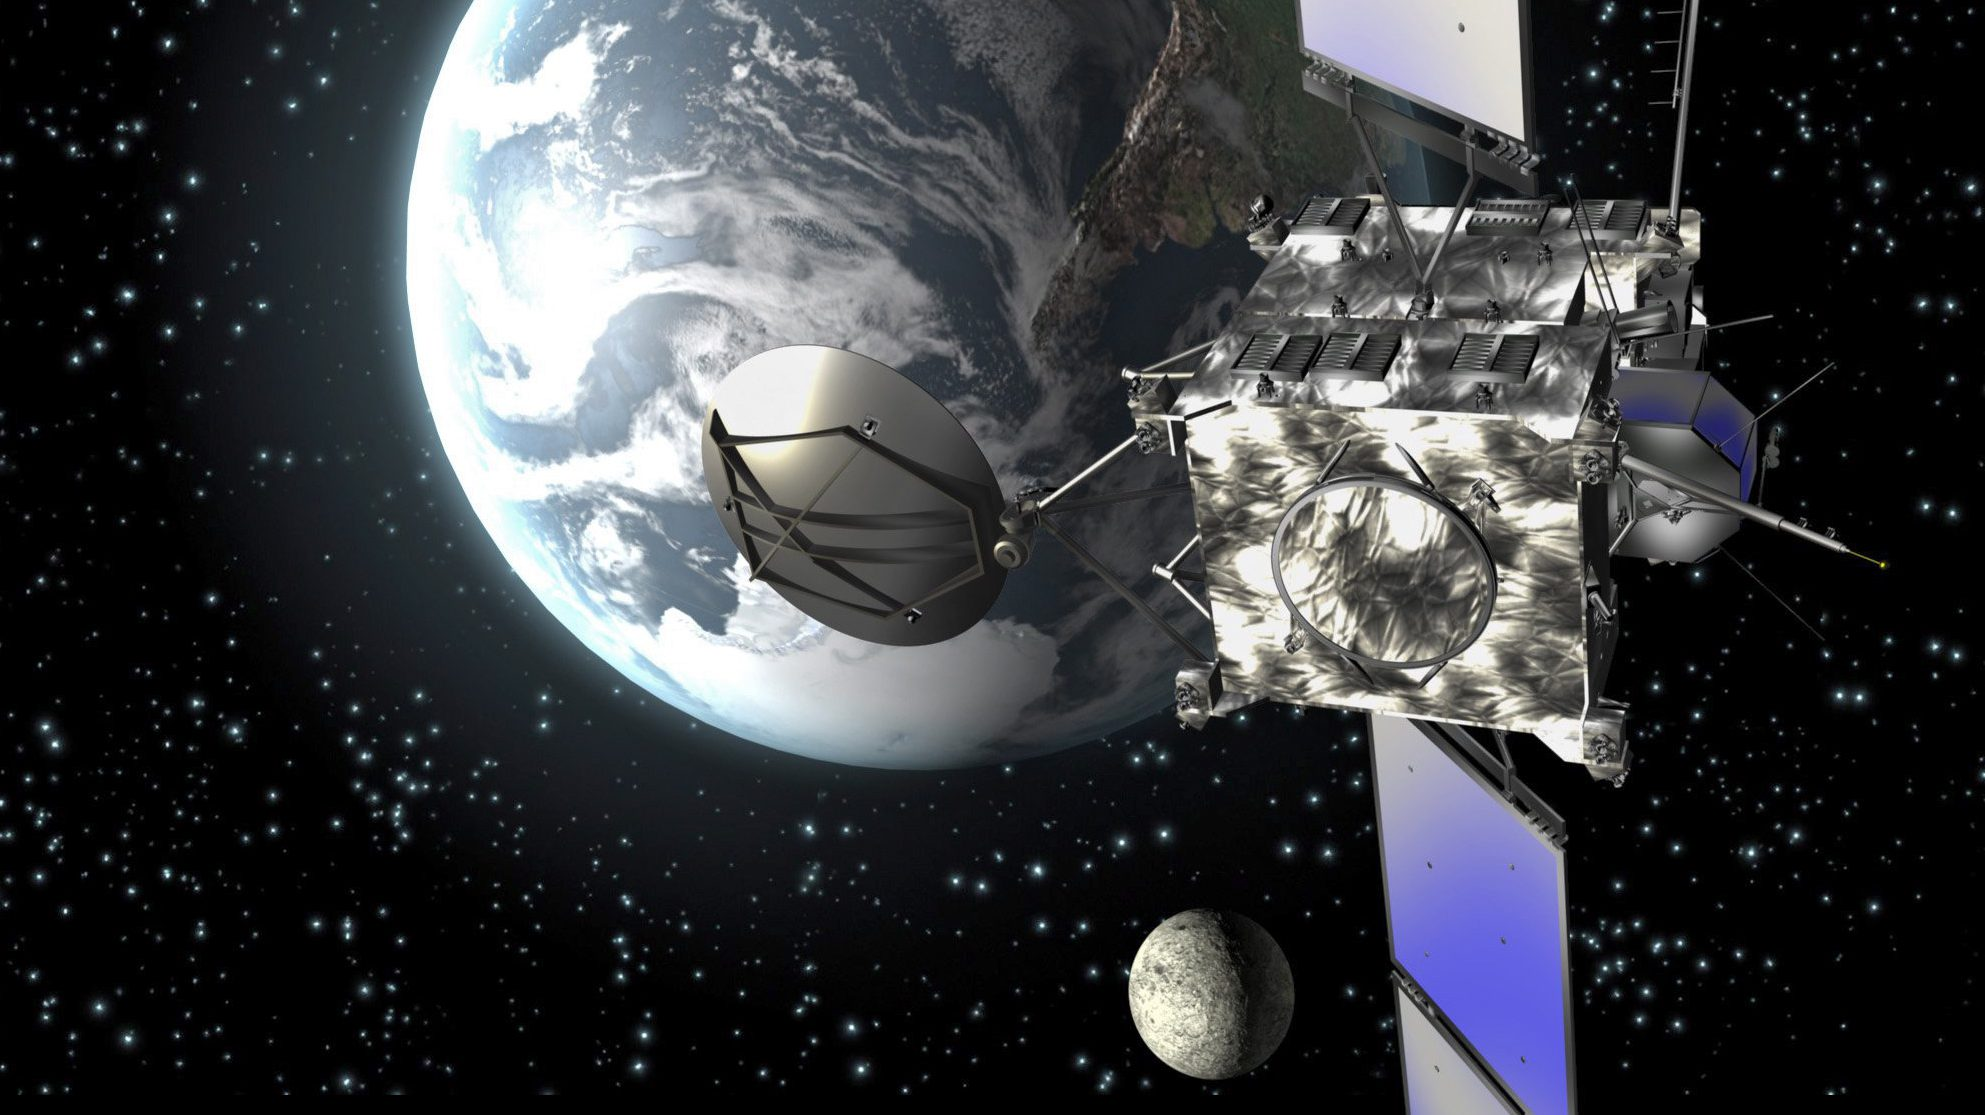 An undated file handout picture shows a computer animation provided by European Space Agency (ESA) in Darmstadt, Germany, showing the ESA satellite 'Rosetta' during its approach on earth. The European Space Agency (ESA) on 29 September 2016 announced it will command its Rosetta spacecraft to a crash-landing onto 67P/Churyumov-Gerasimenko comet. Rosetta reached the comet's orbit in August 2014 after its launch from Earth in 2004.